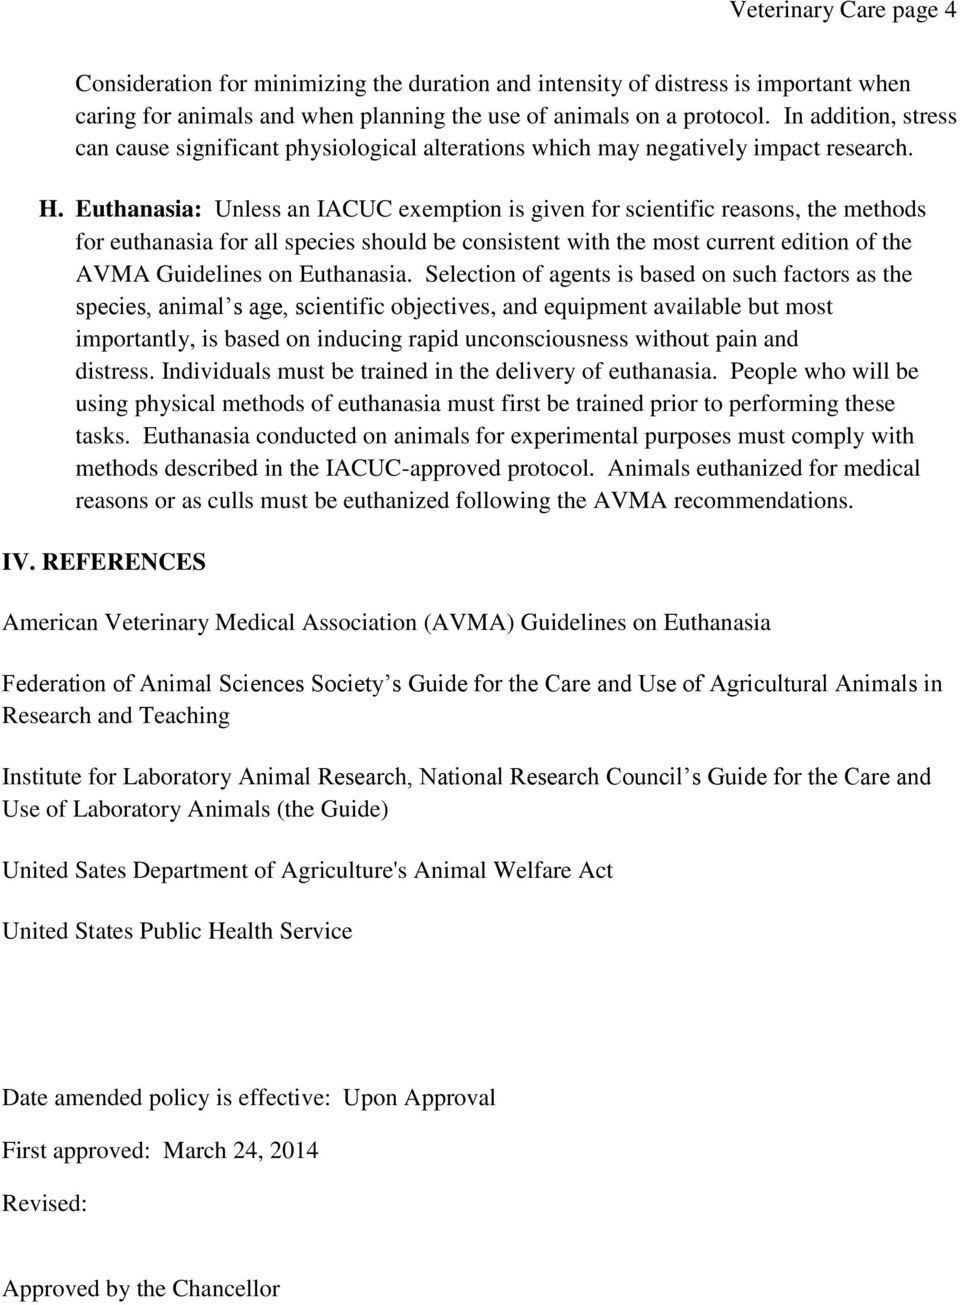 Euthanasia: Unless an IACUC exemption is given for scientific reasons, the methods for euthanasia for all species should be consistent with the most current edition of the AVMA Guidelines on